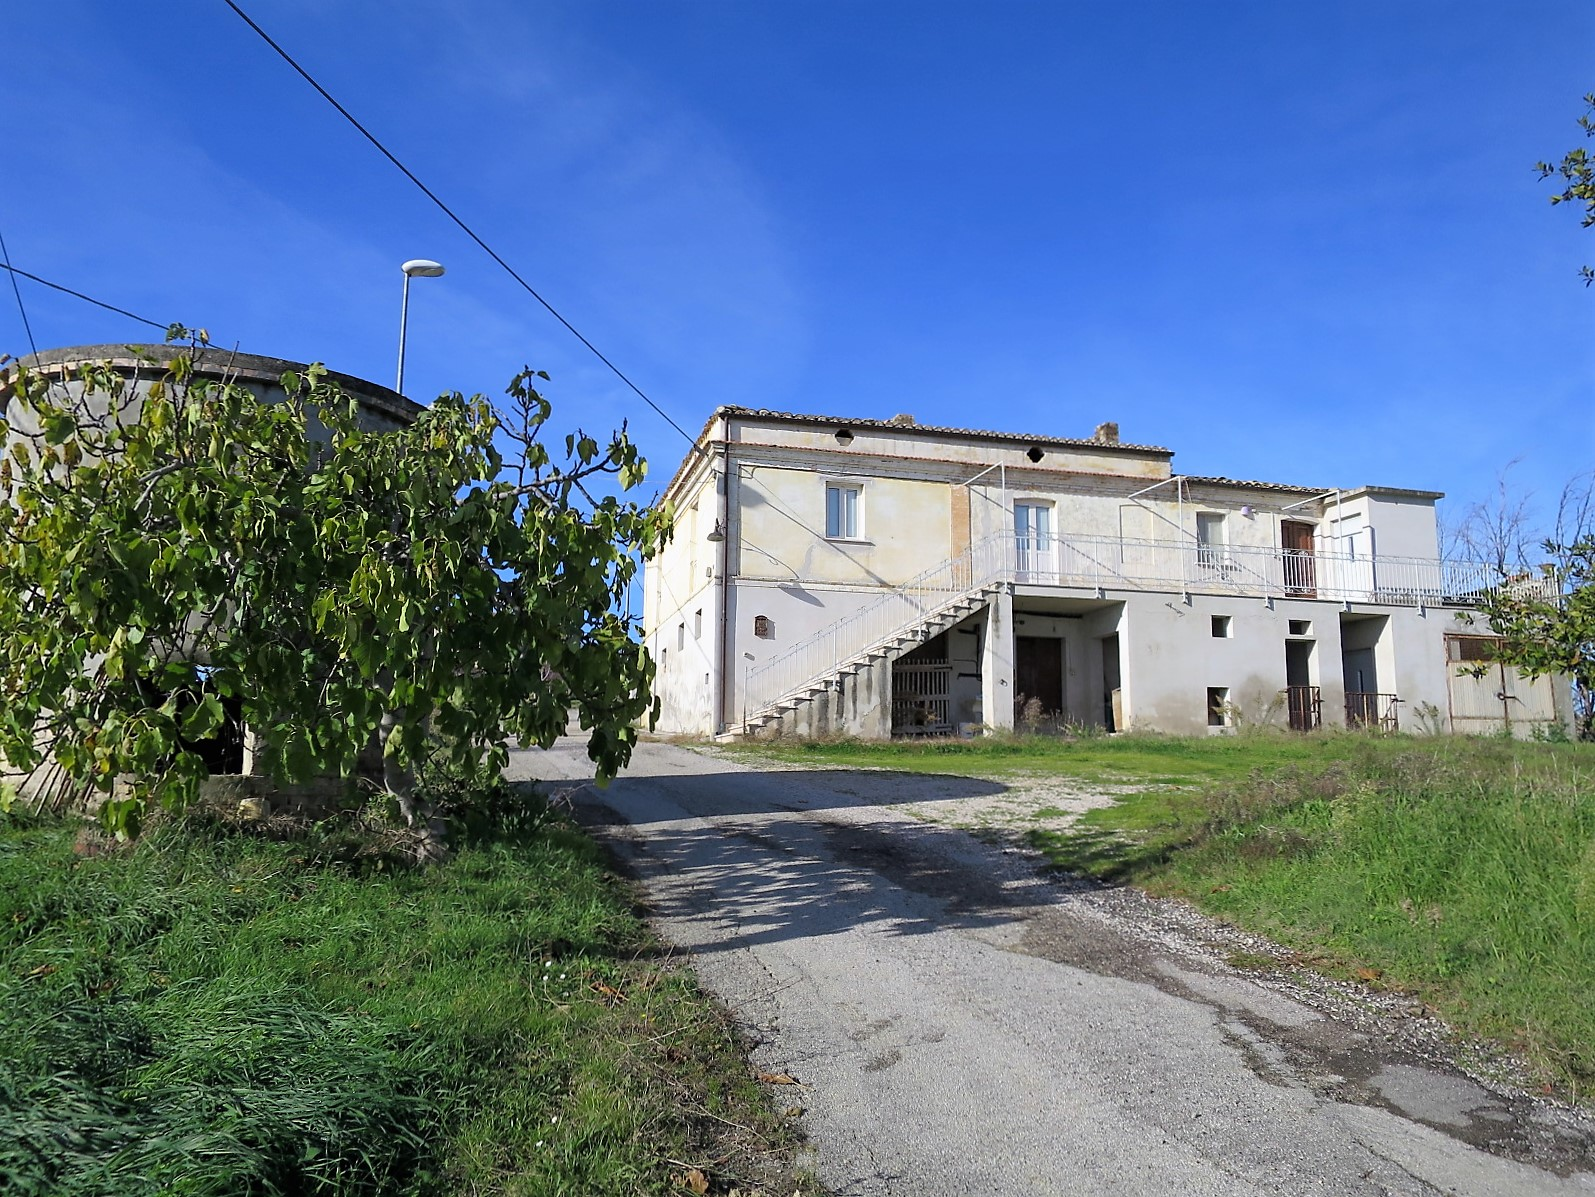 Country Houses Country Houses for sale Elice (PE), Casa Frantoio - Elice - EUR 182.886 70